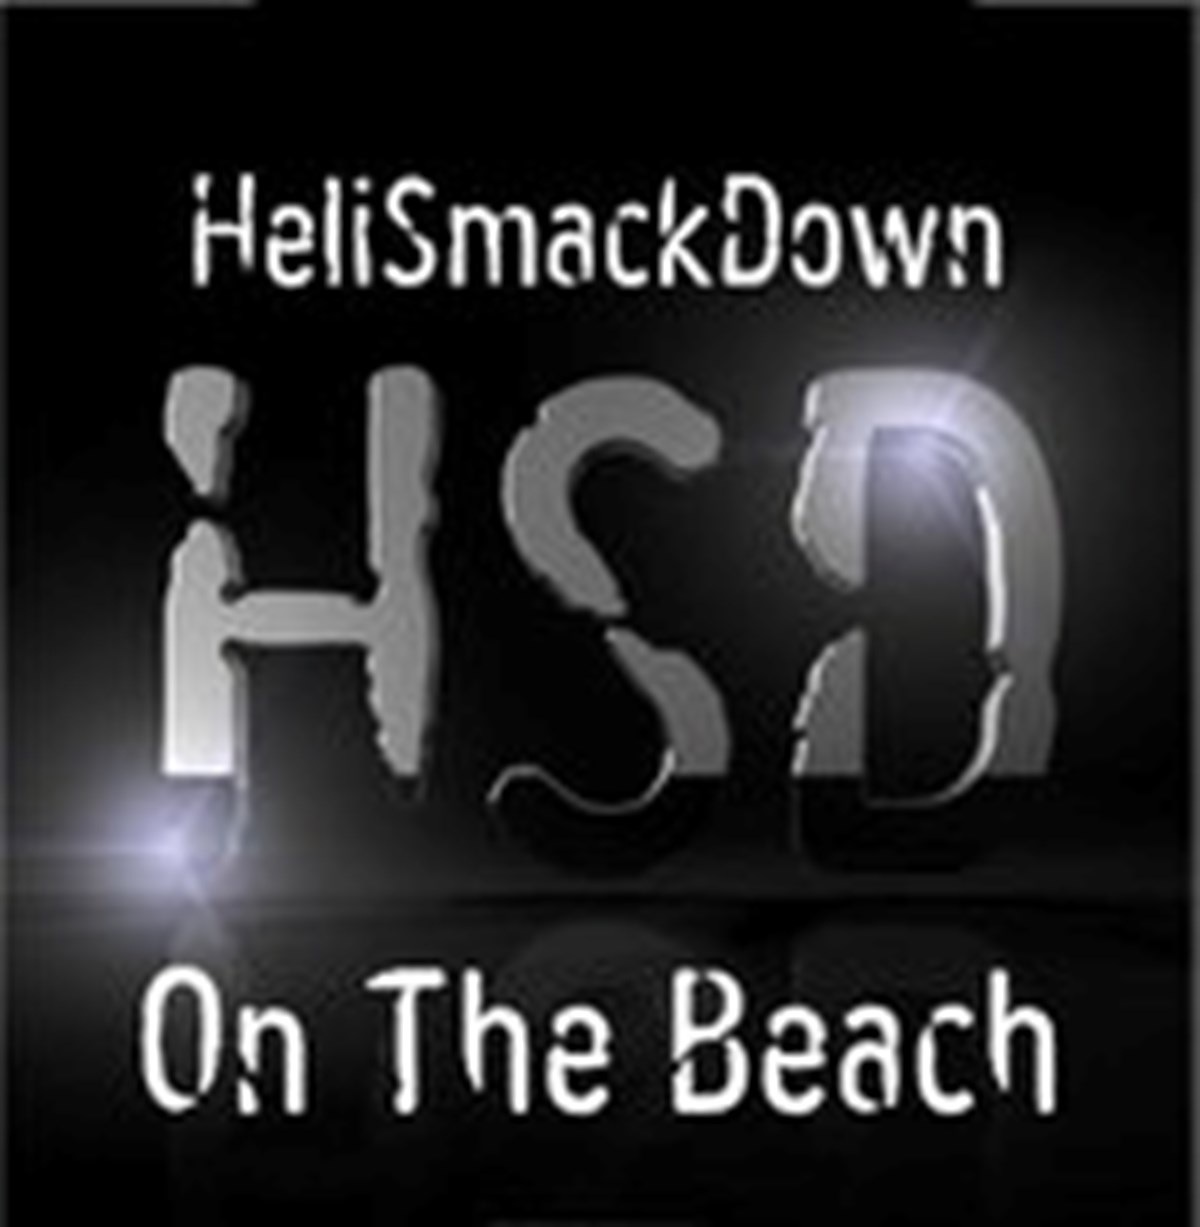 Heli Smack Down on the Beach